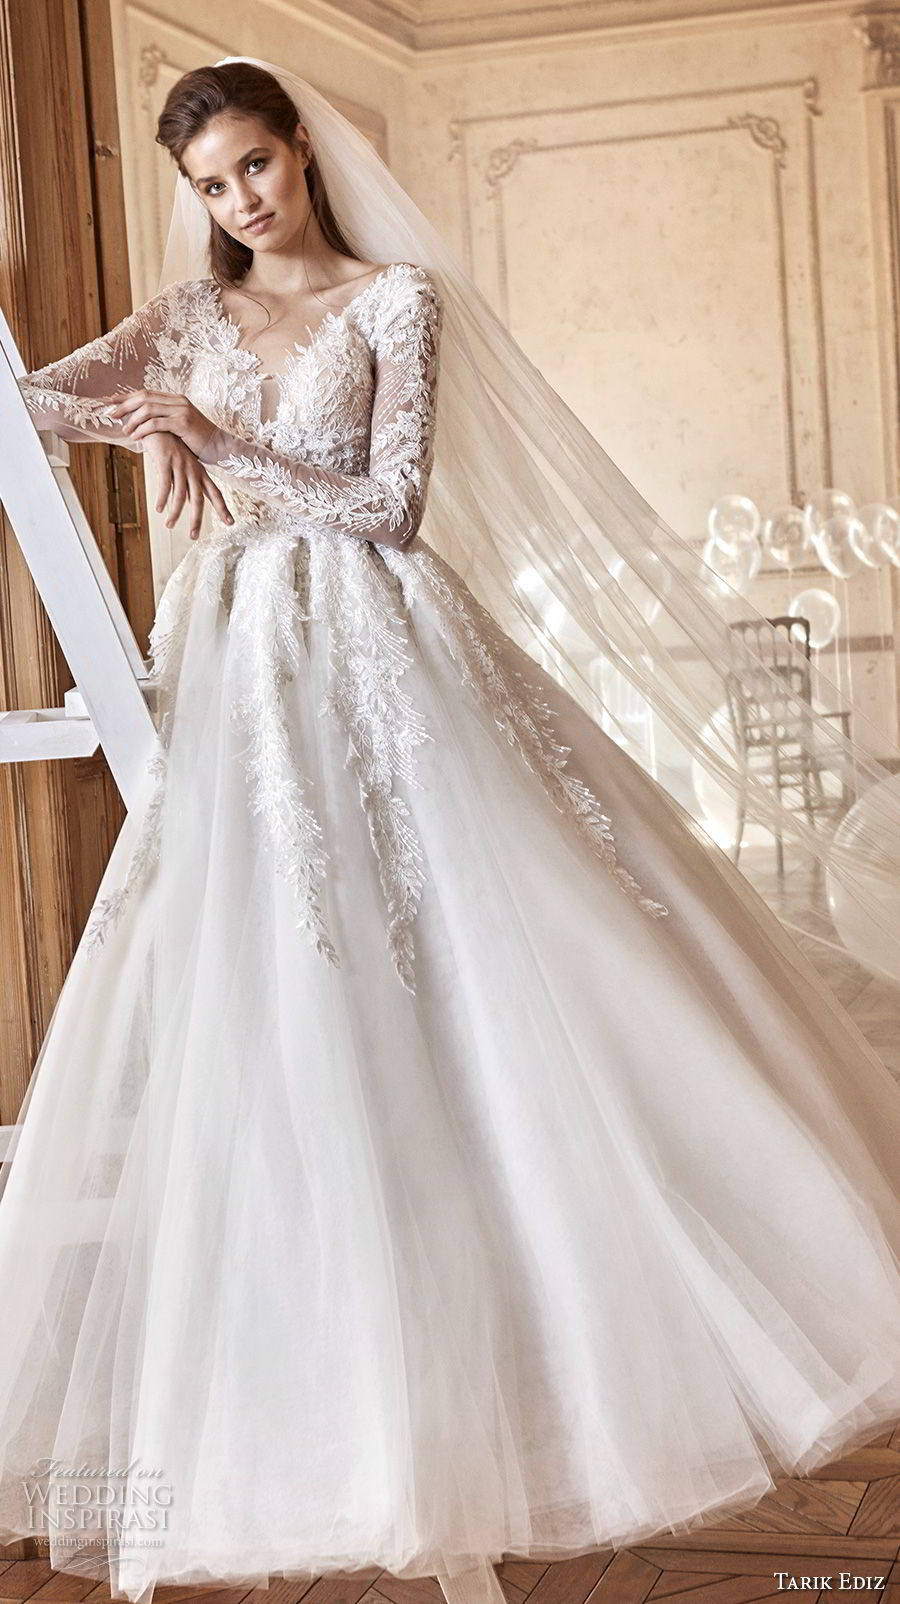 tarik ediz 2017 bridal long sleeves v neck heavily embellished bodice a line wedding dress (24) mv